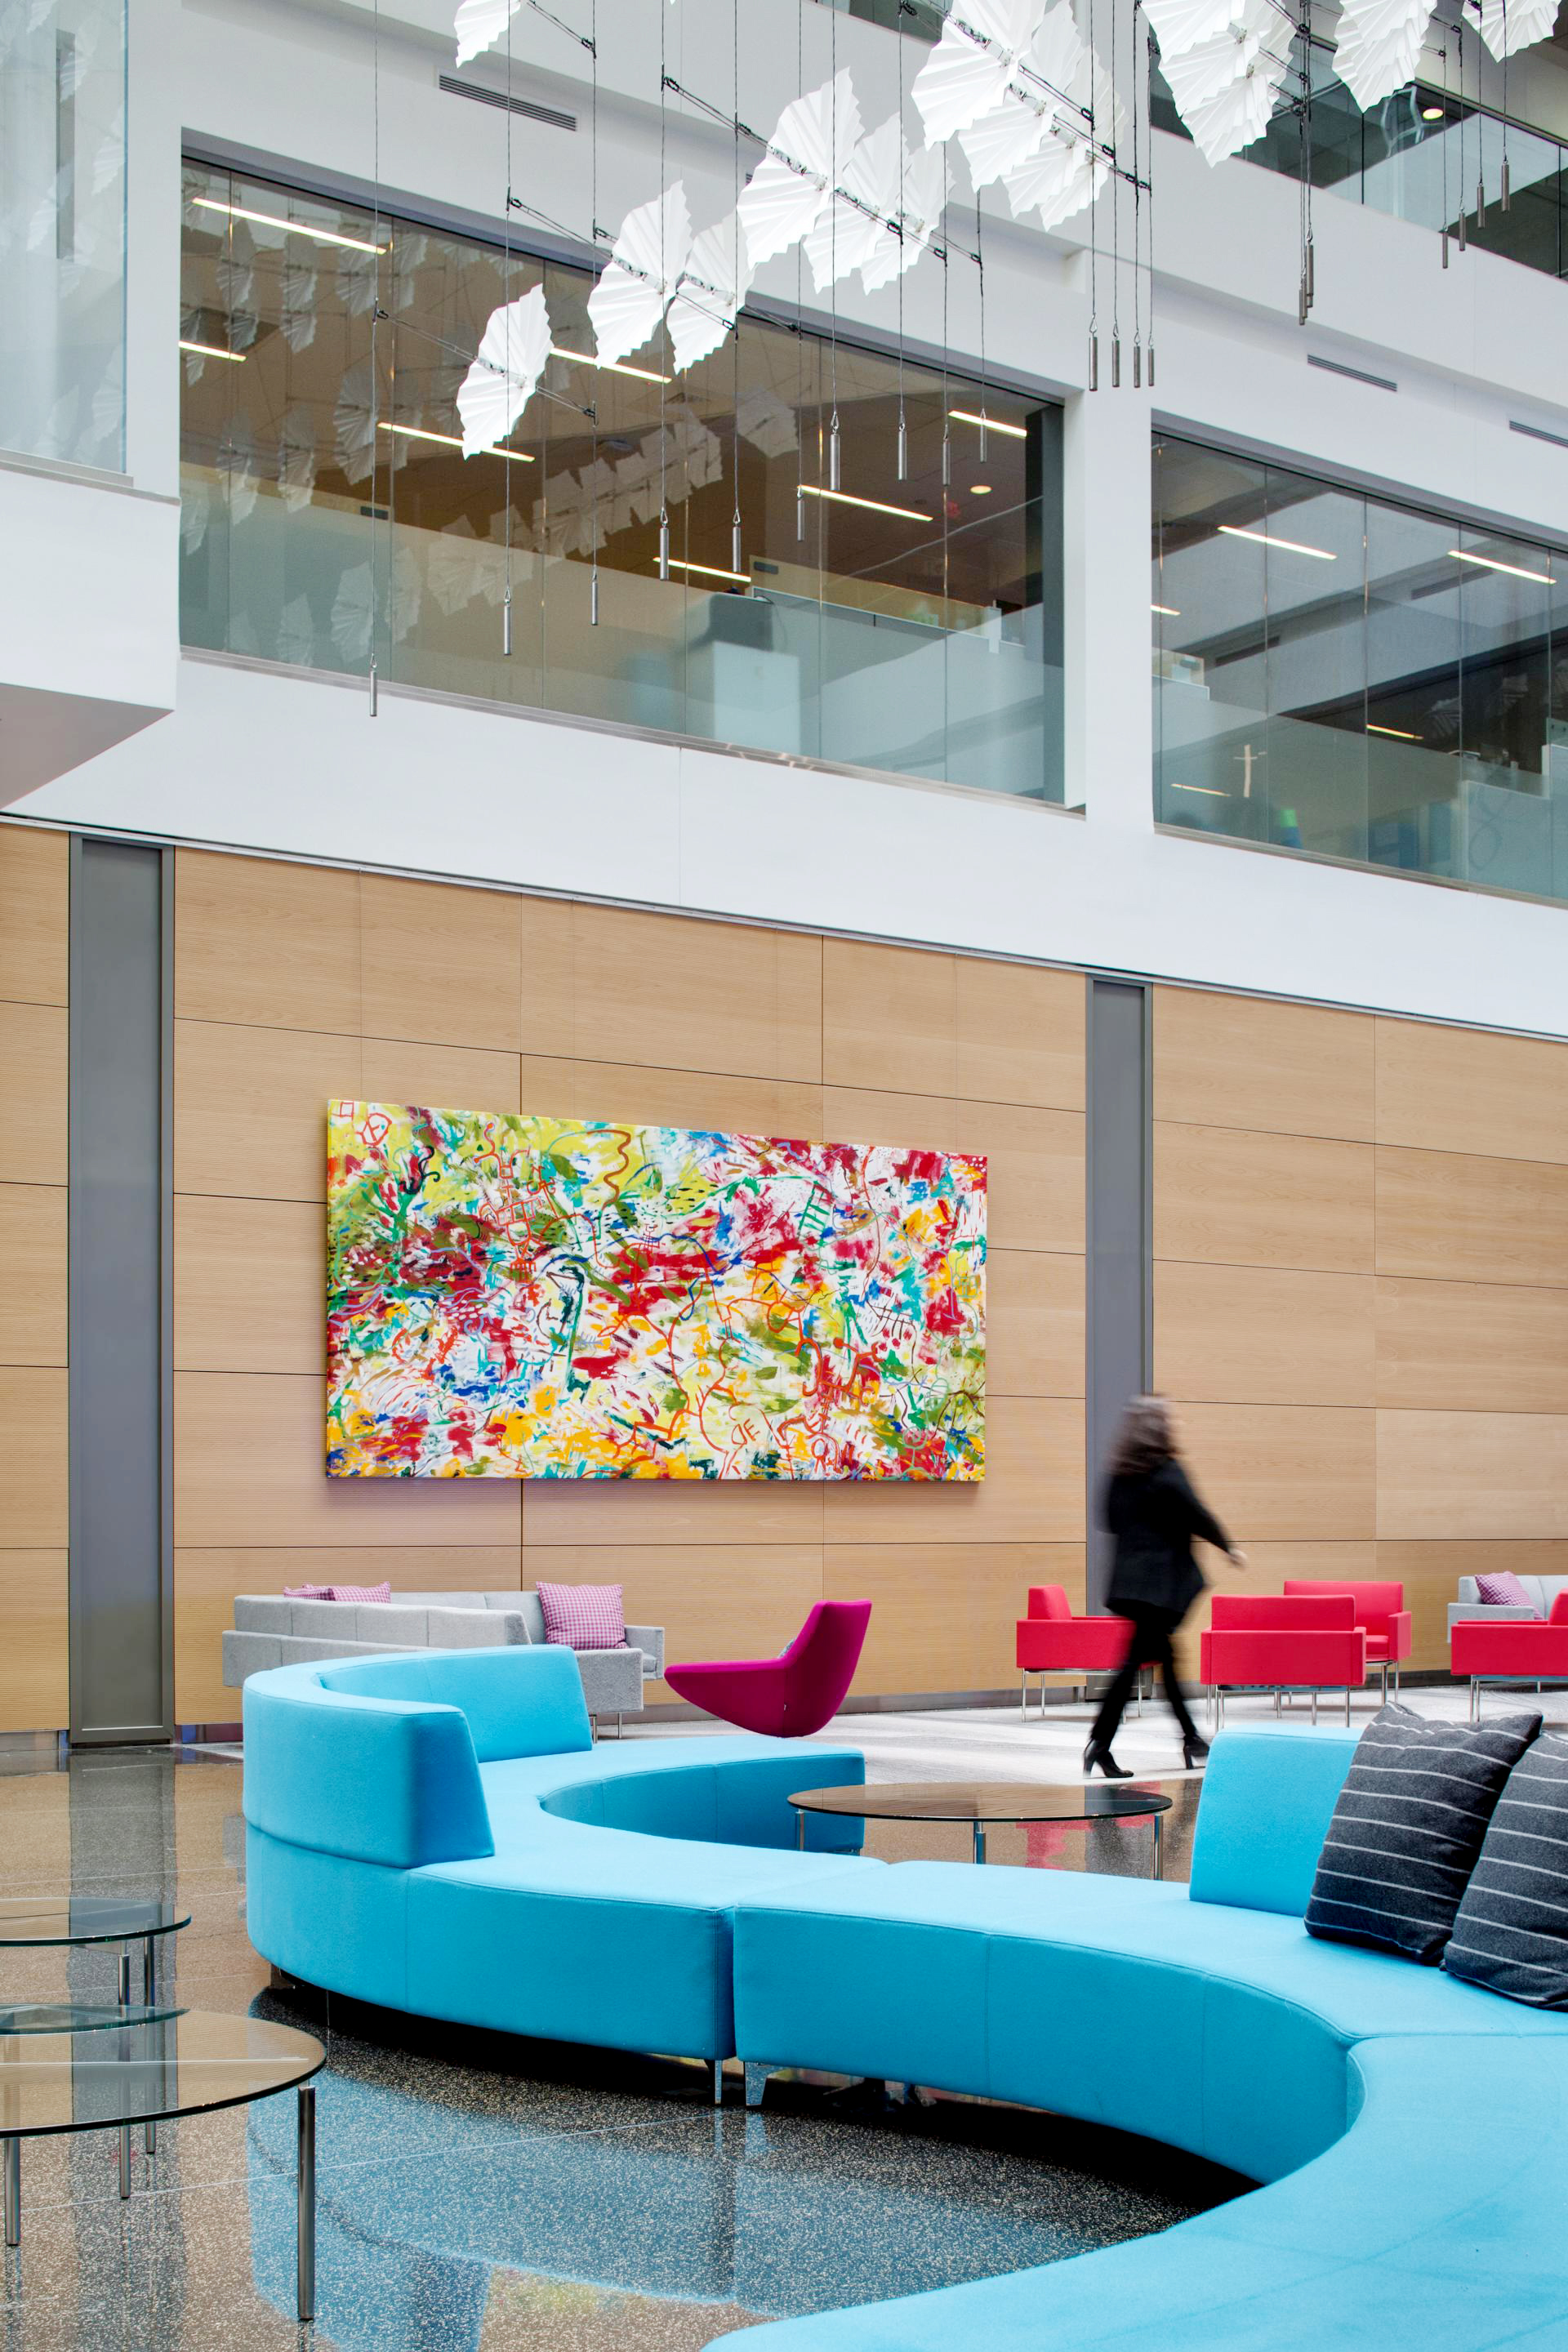 Image - Fine Art in Lobby Display